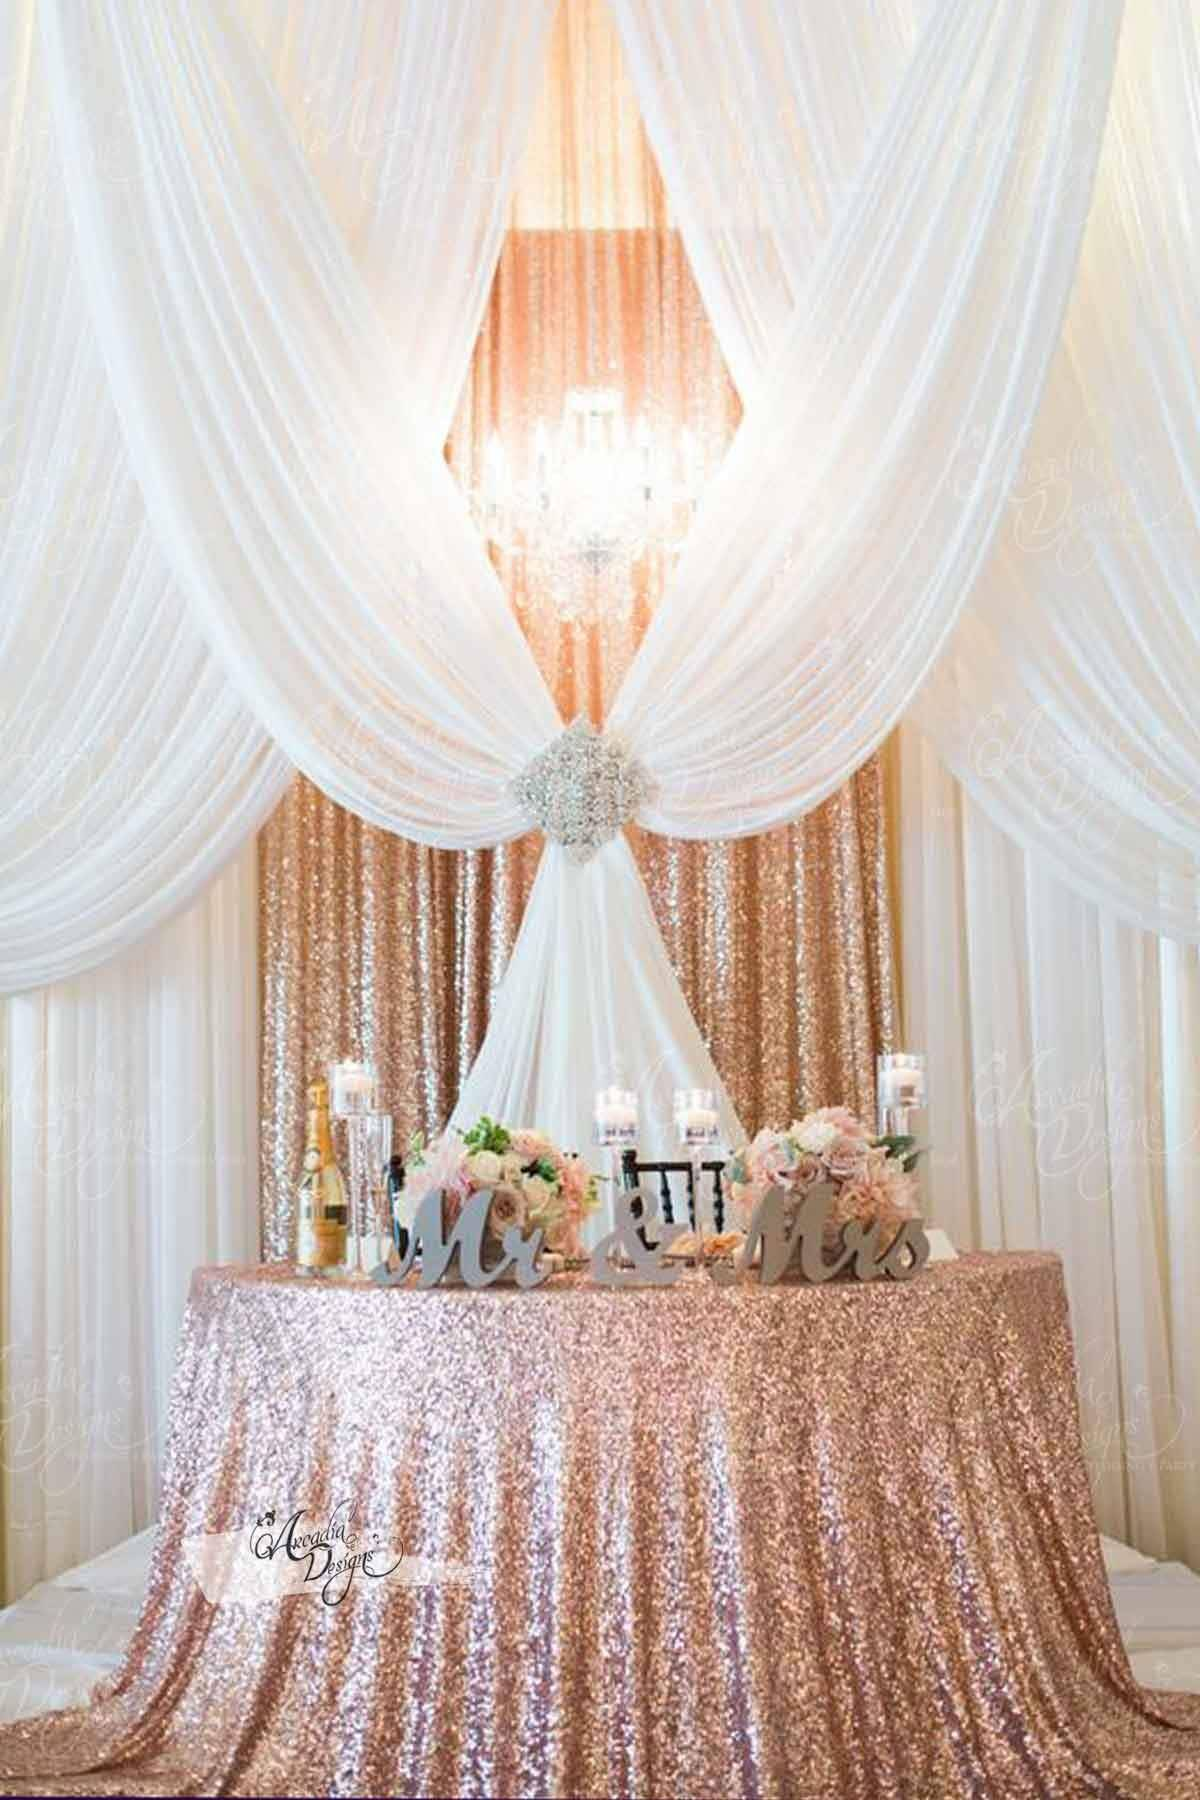 Wedding Curtain Decoration Lovely Pin On Products